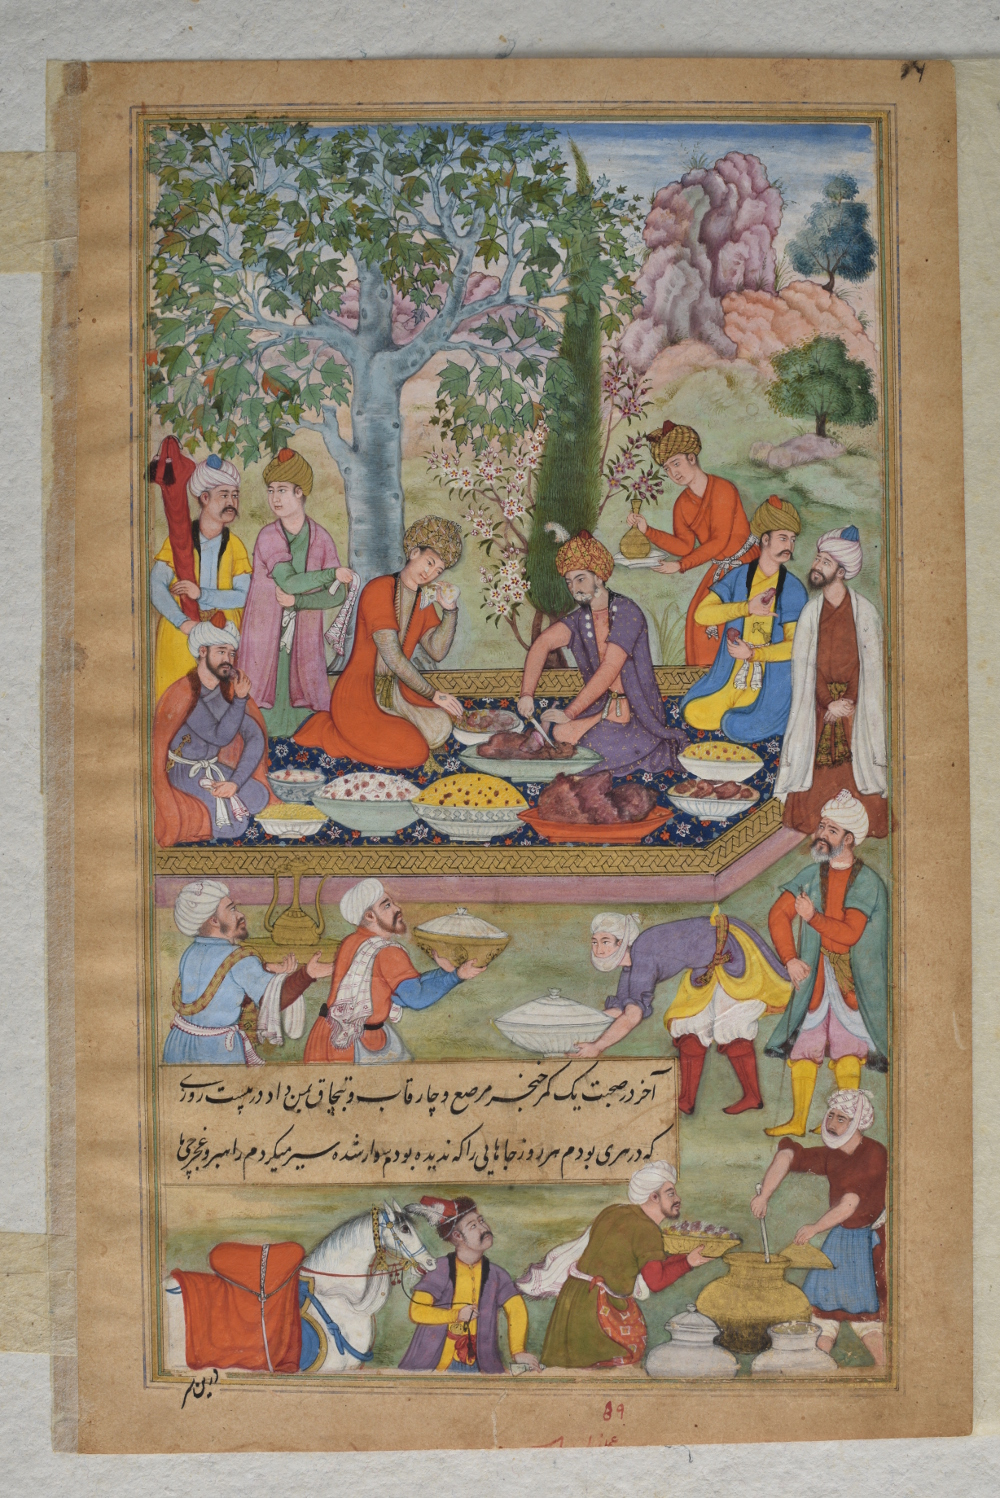 A Safavid prince  - Attributed to Muhammad QasimInk, opaque watercolour and gold on paperAbout 1650Isfahan, IranBritish MuseumThis painting depicts a royal picnic in which a Safavid prince is attended by members of his court. Musicians play while youths serve wine in a night-time scene, surrounded by mountains, trees and a river. The prince, identified by his fur-lined jacket, may be Shah 'Abbas II (reigned 1642–66). A contemporary of the Mughal Emperor Shah Jahan, Shah 'Abbas II ascended the throne when he was only ten-years old. Based in Isfahan, the Safavids were one of the most powerful dynasties of Iran.